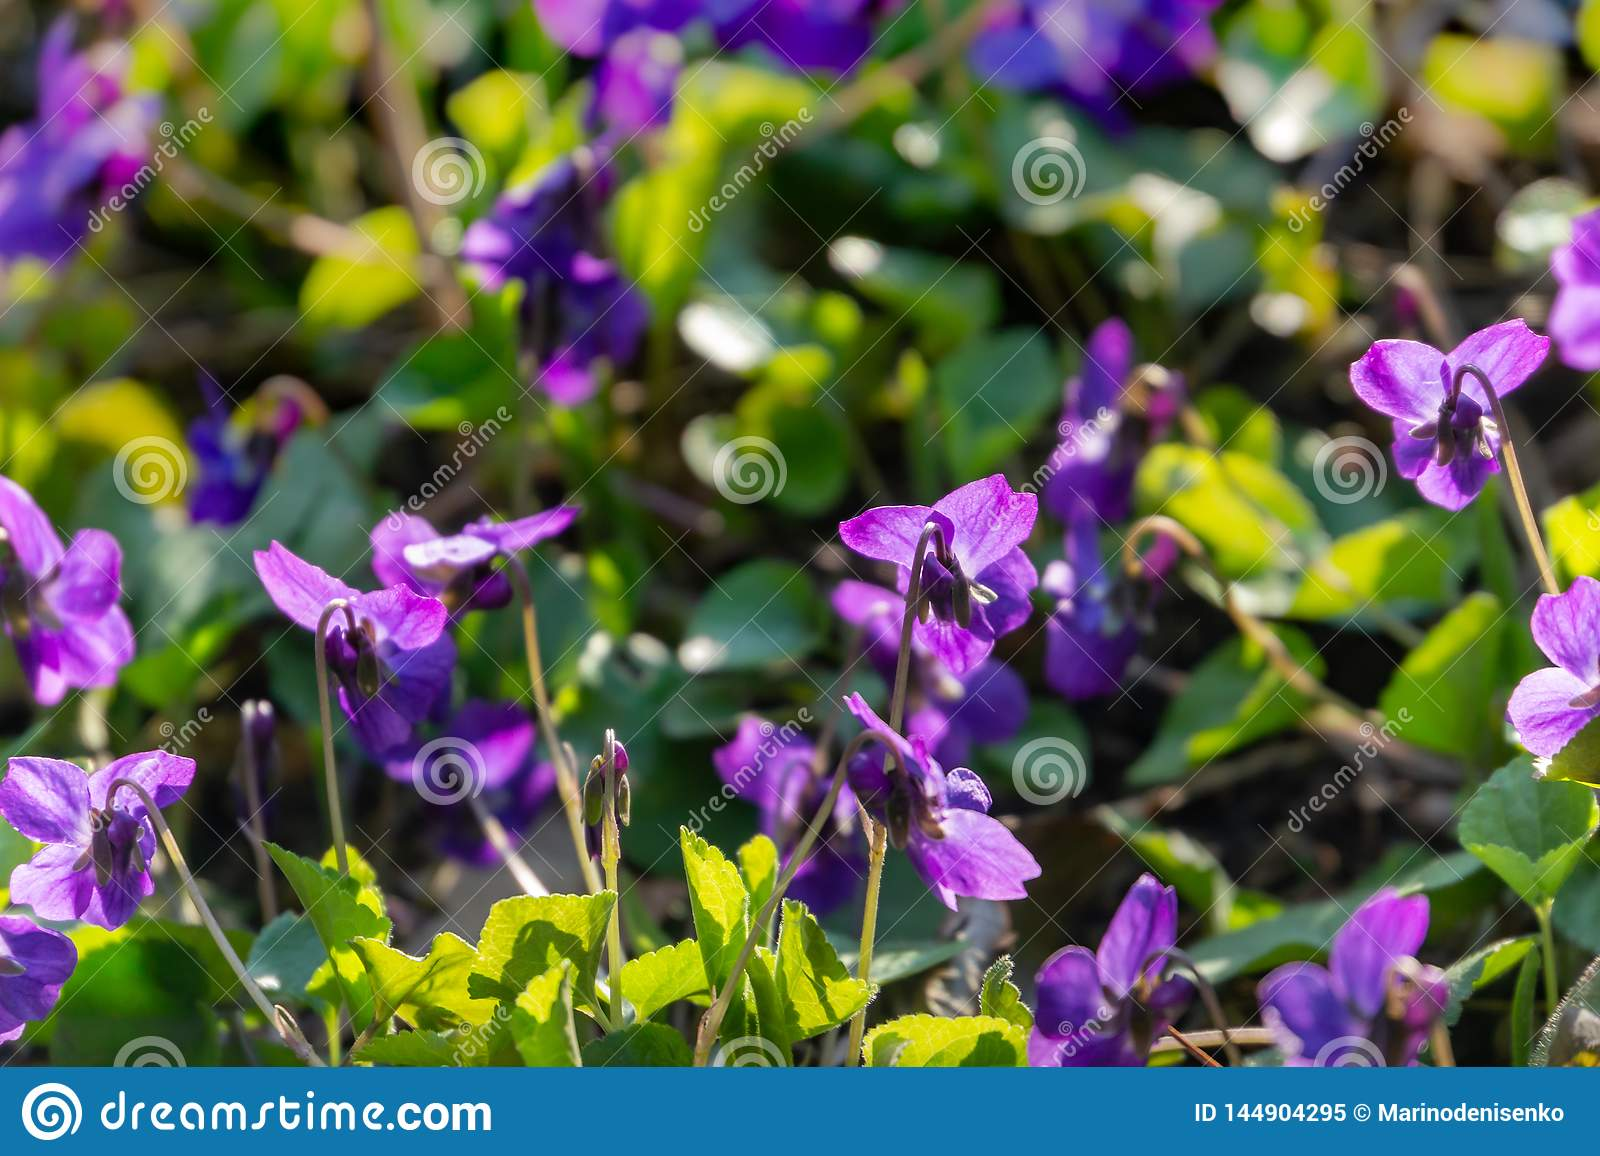 Soft focus against sun spring forest violets on background of blurred natural green. Heads of violets turned toward the sun